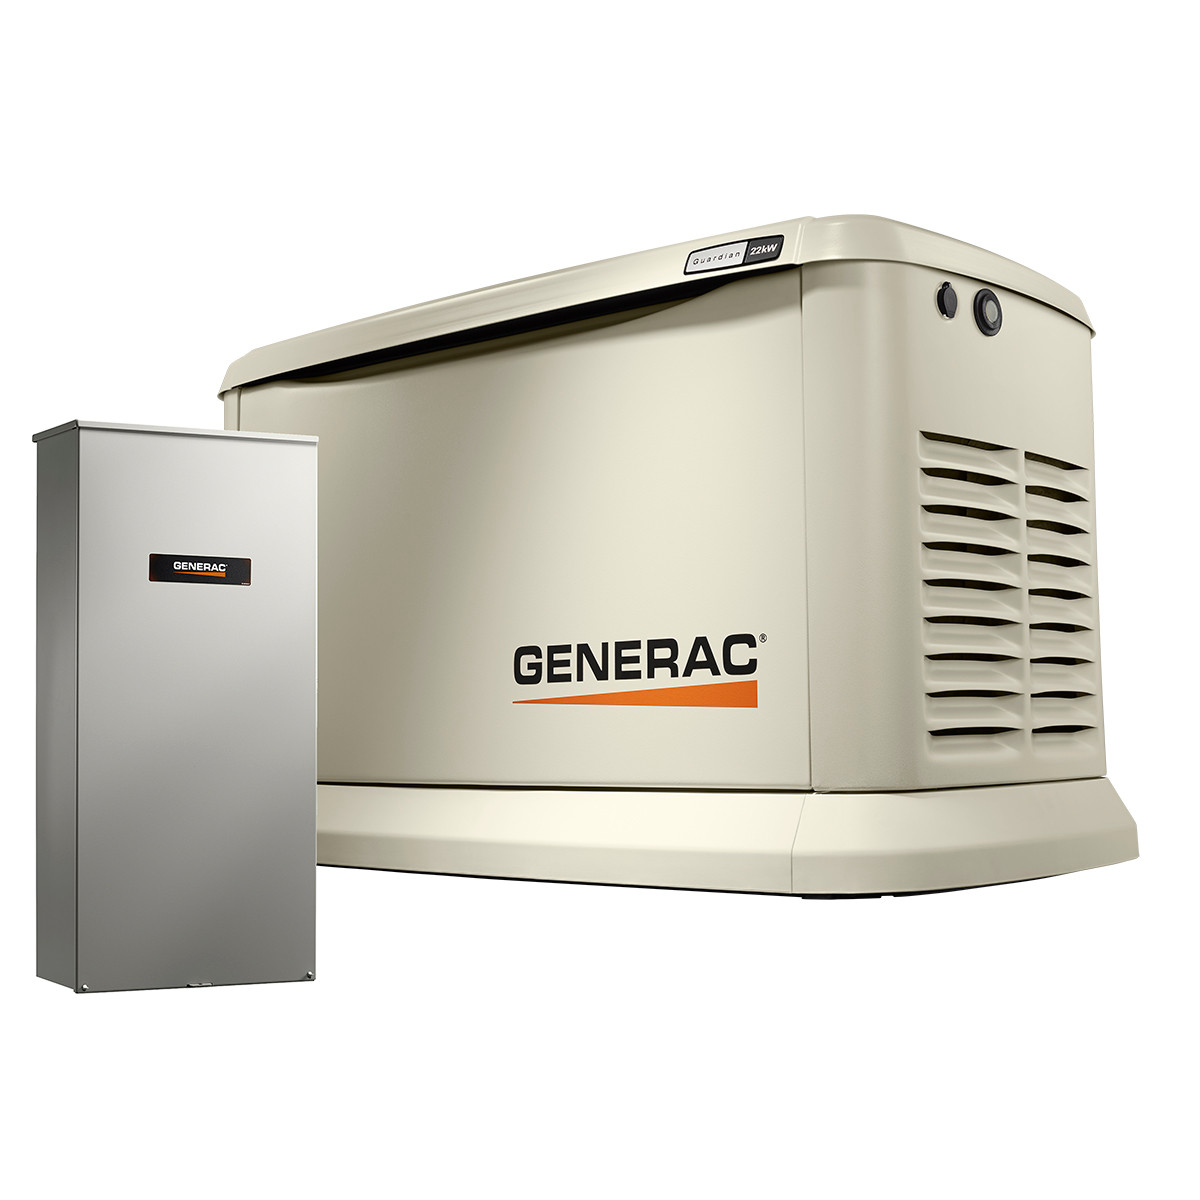 Generac 70432 22kw Guardian Generator With Wi Fi 200a Se Transfer Switch Wiring